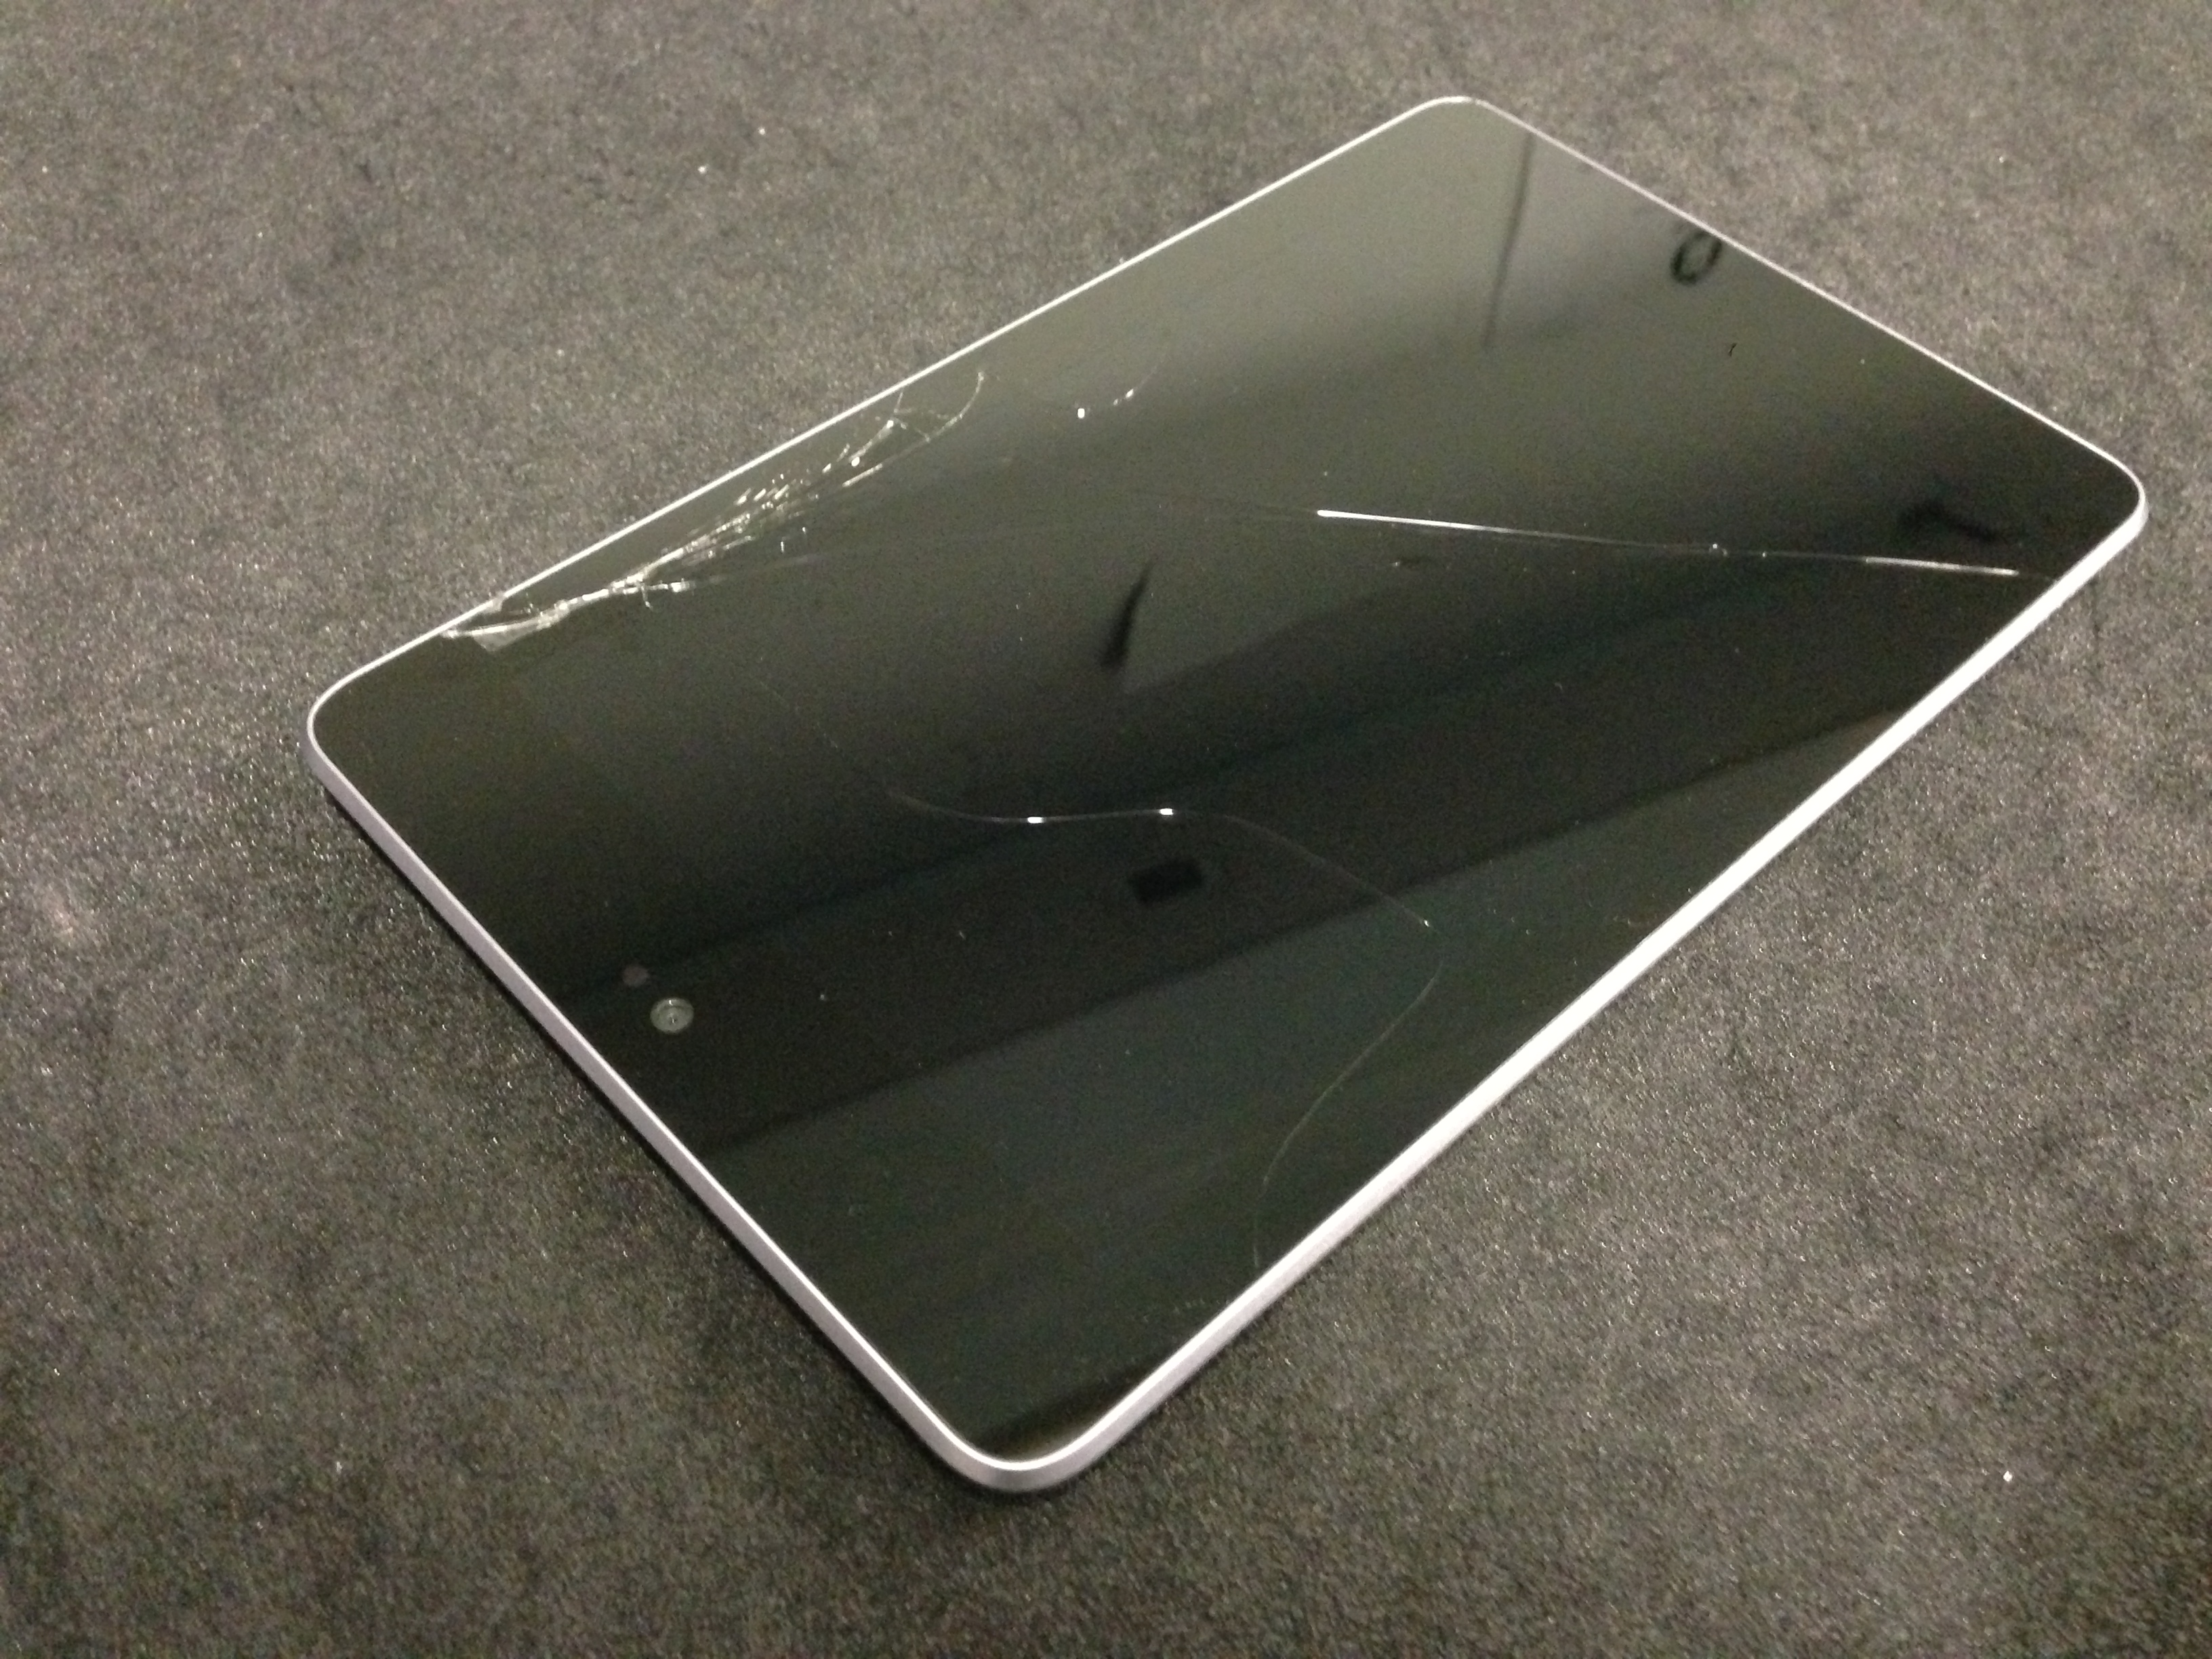 Google Nexus 7 Front Glass Screen Repair Service  Mission Repair